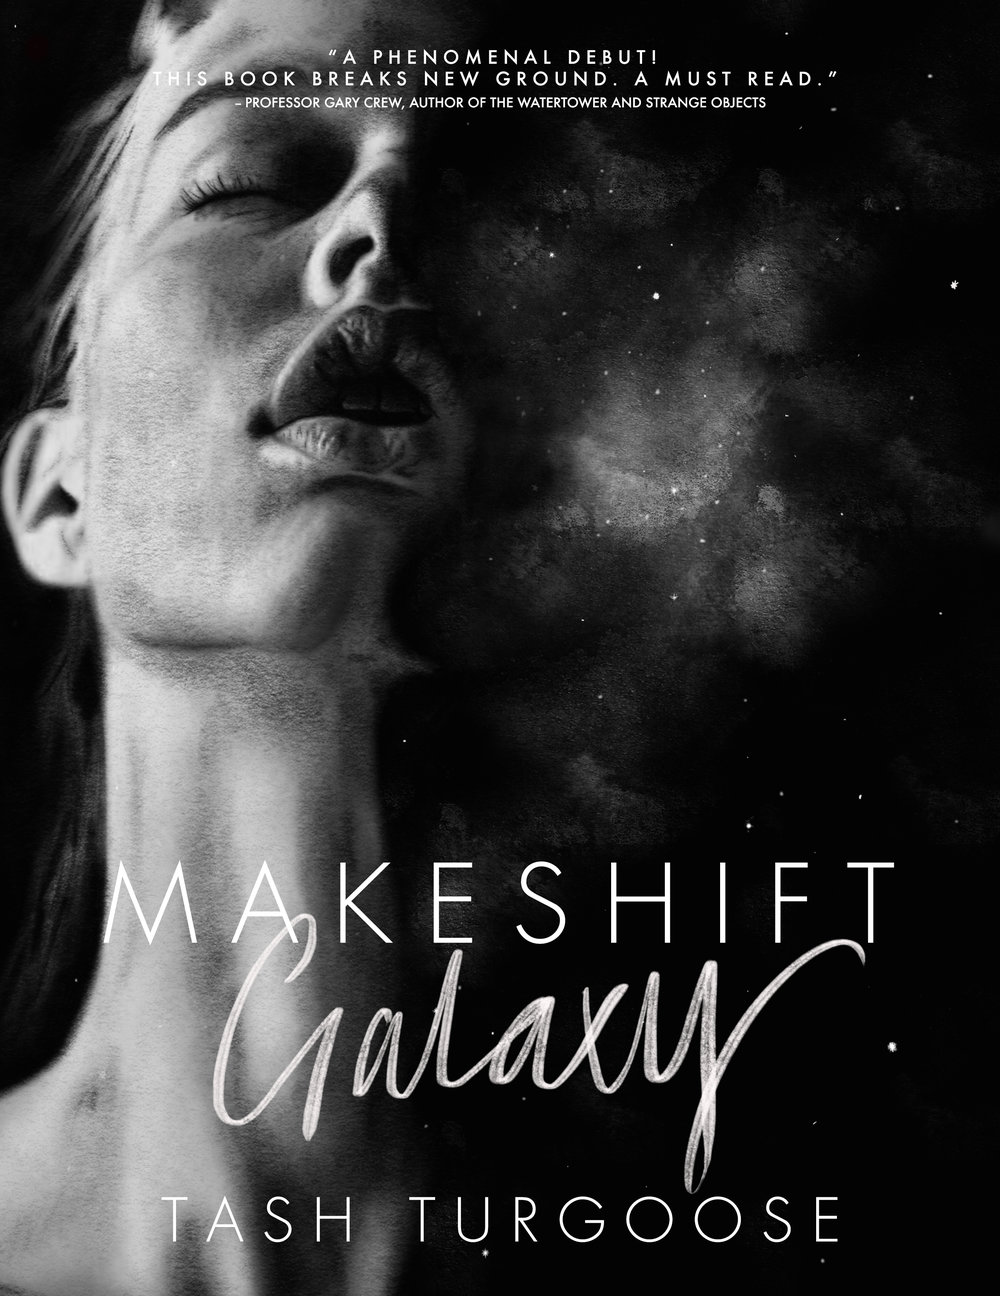 Makeshift Galaxy - Tash Turgoose